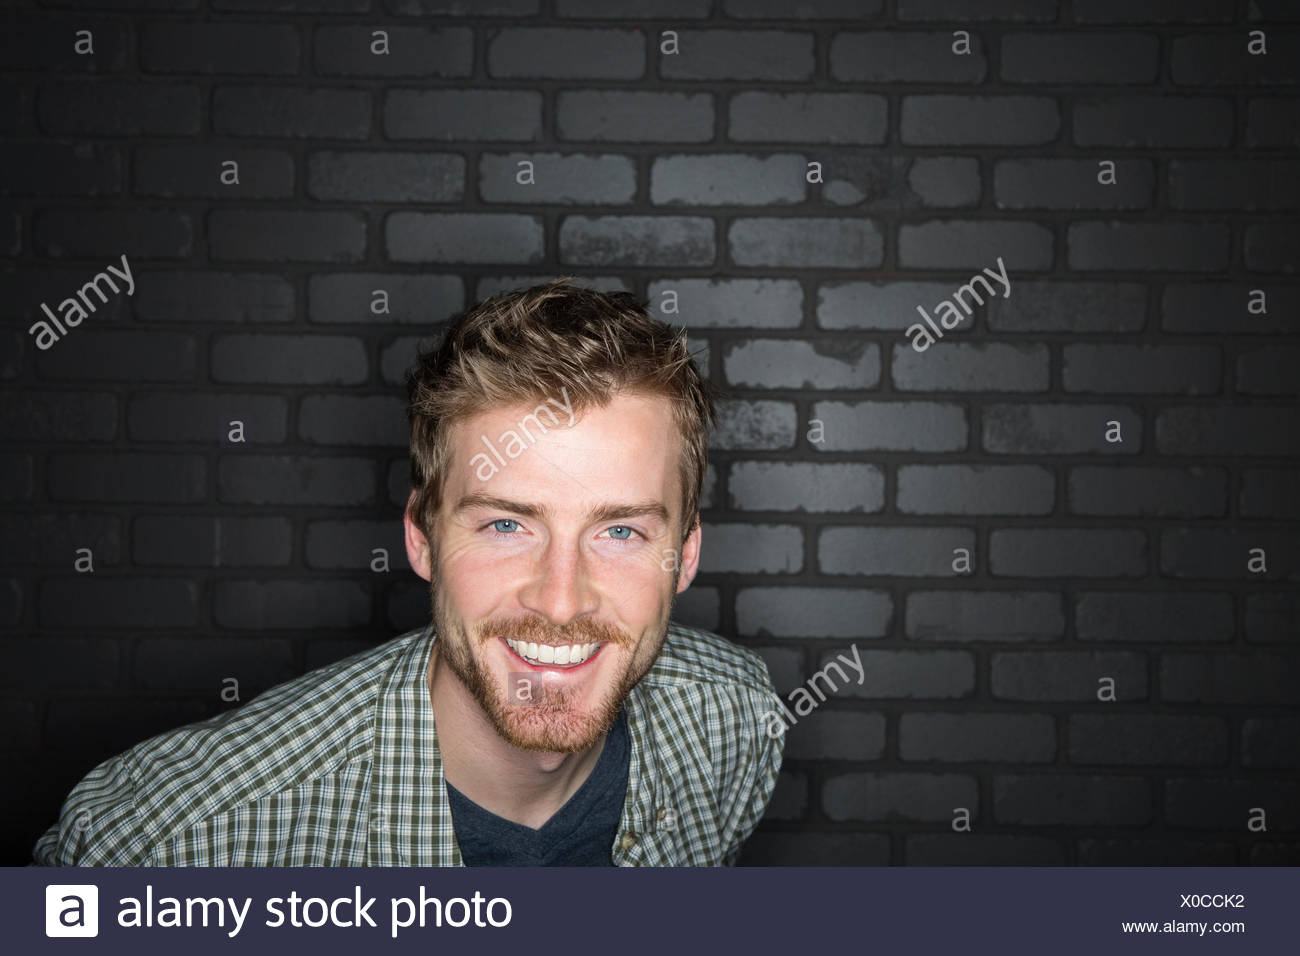 Portrait of enthusiastic man in plaid shirt - Stock Image